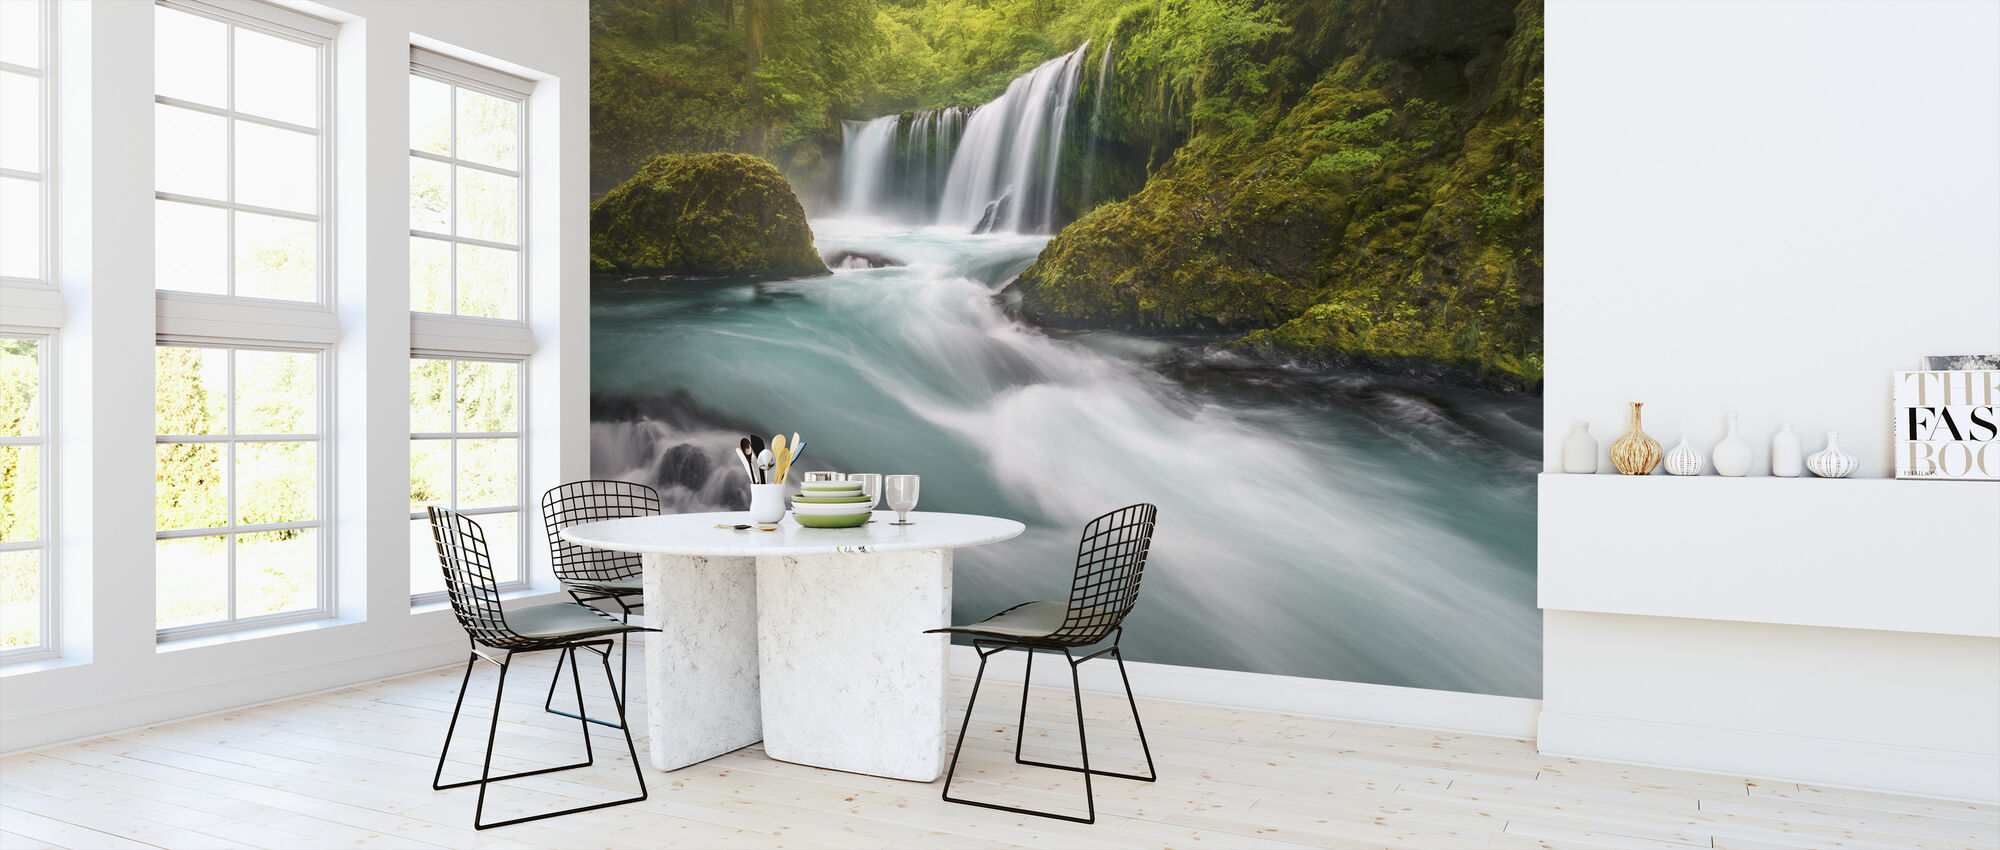 Spirit Falls - Wallpaper - Kitchen